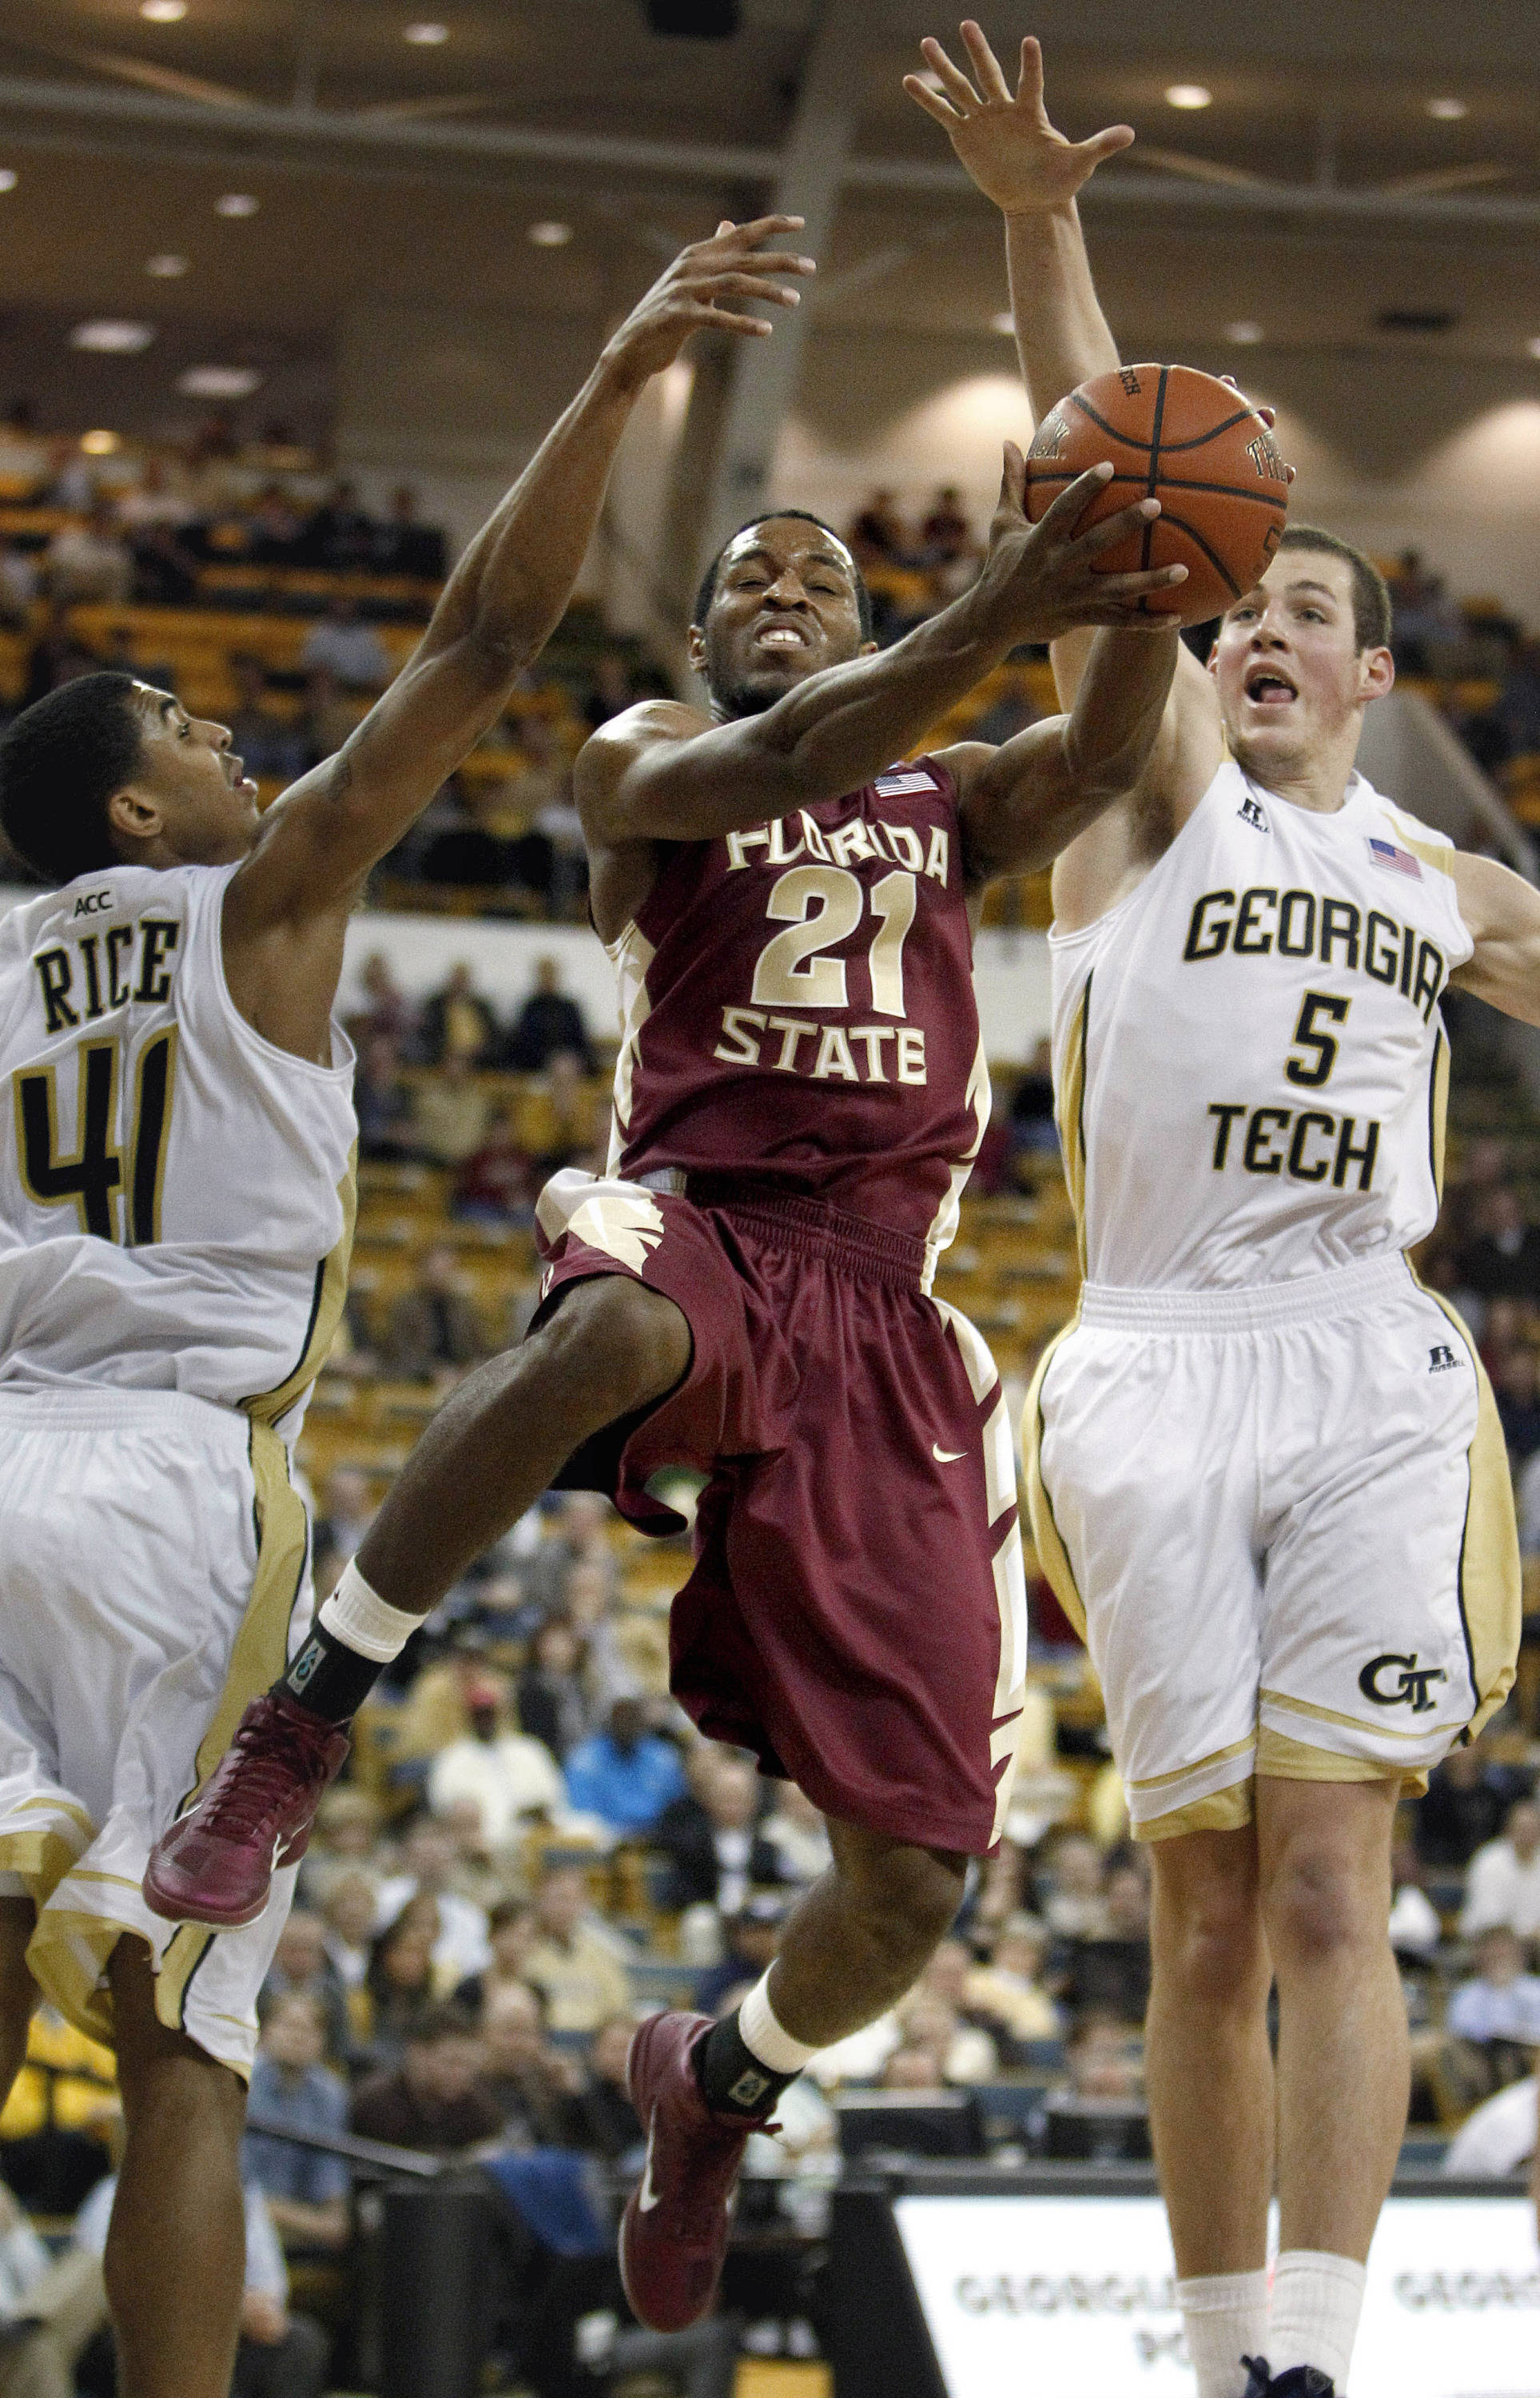 Florida State guard Michael Snaer (21) puts up a shot against Georgia Tech guard Glen Rice Jr. (41) and center Daniel Miller (5) during the second half. (AP Photo/David Goldman)